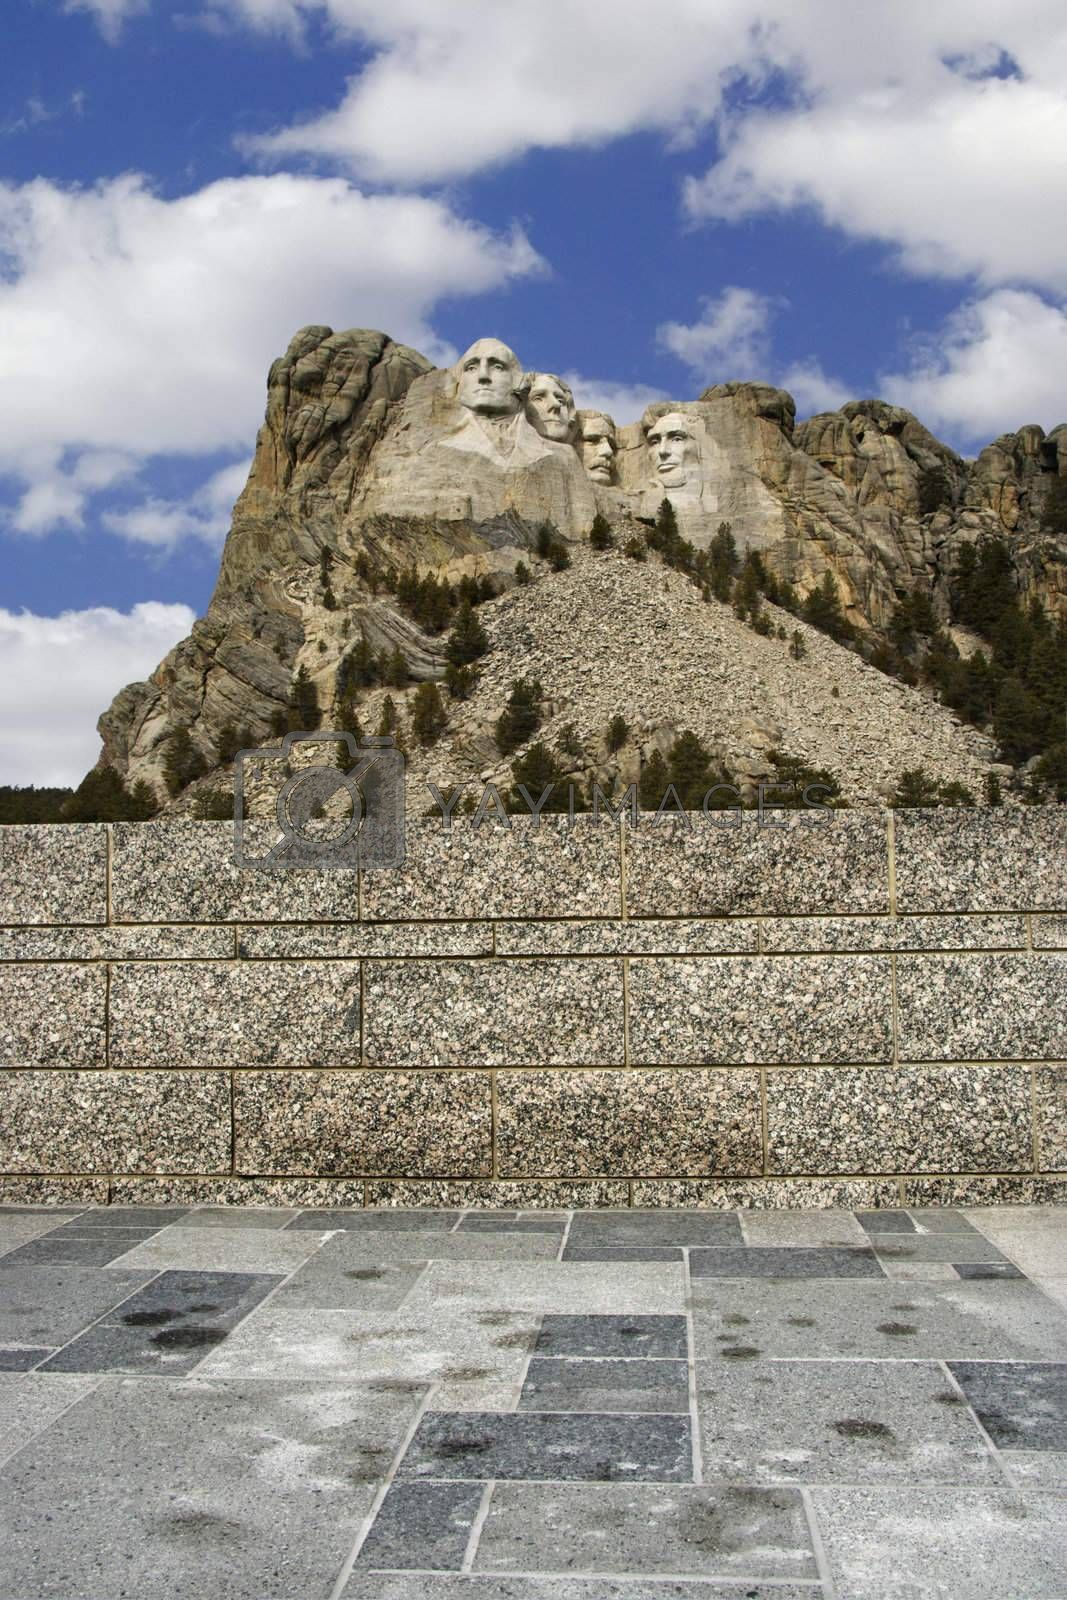 Mount Rushmore National Monument, South Dakota, seen from a distance.